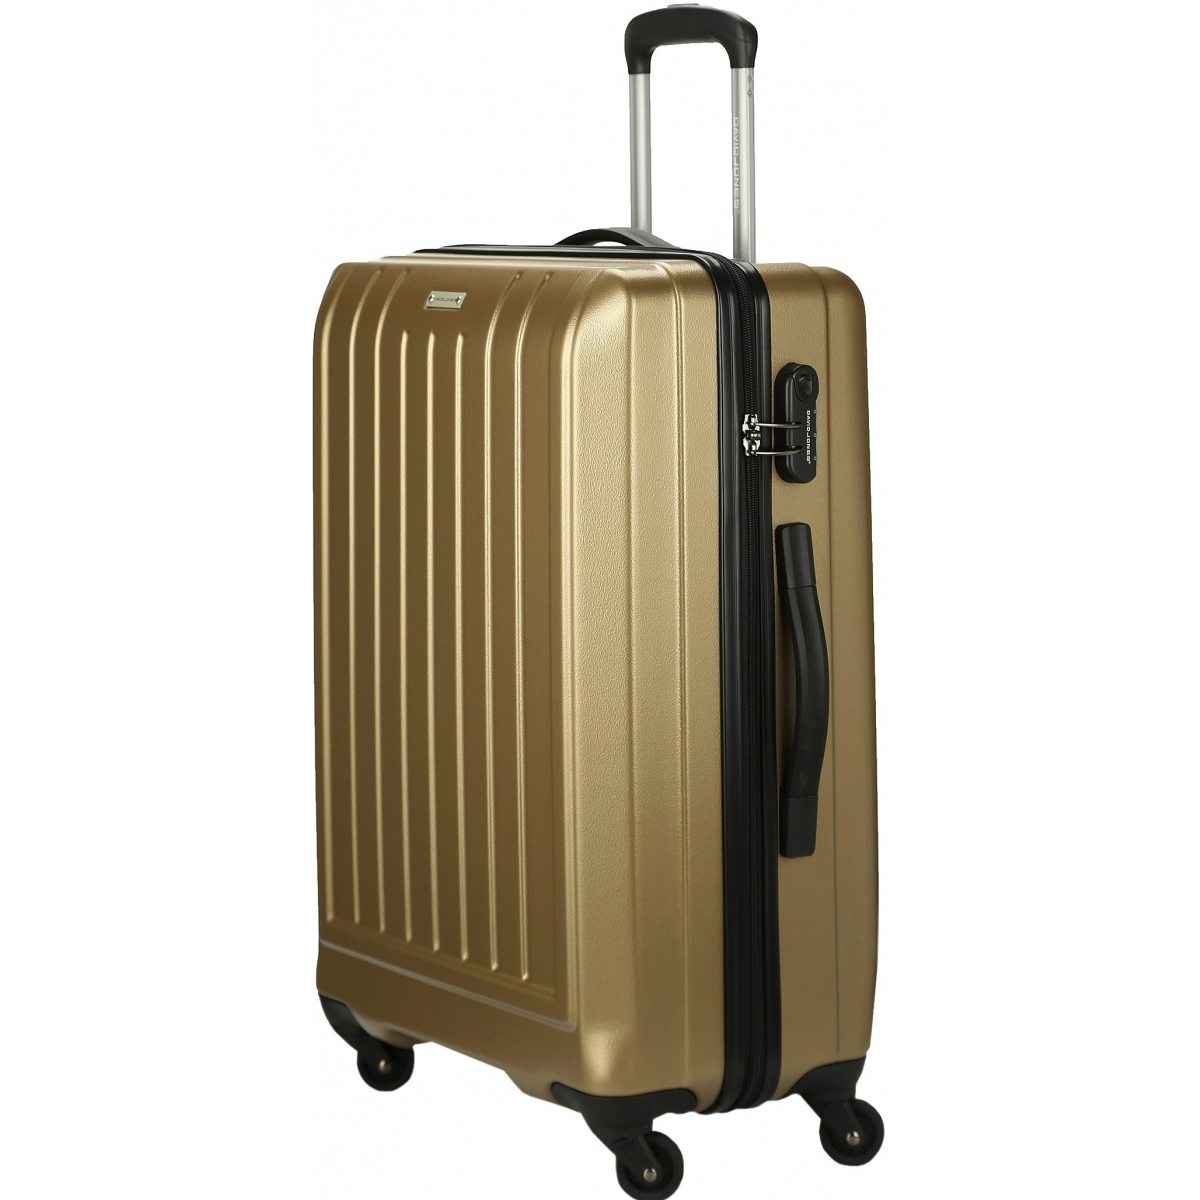 valise rigide david jones taille g 76cm ba10151g couleur principale champagne valise pas. Black Bedroom Furniture Sets. Home Design Ideas